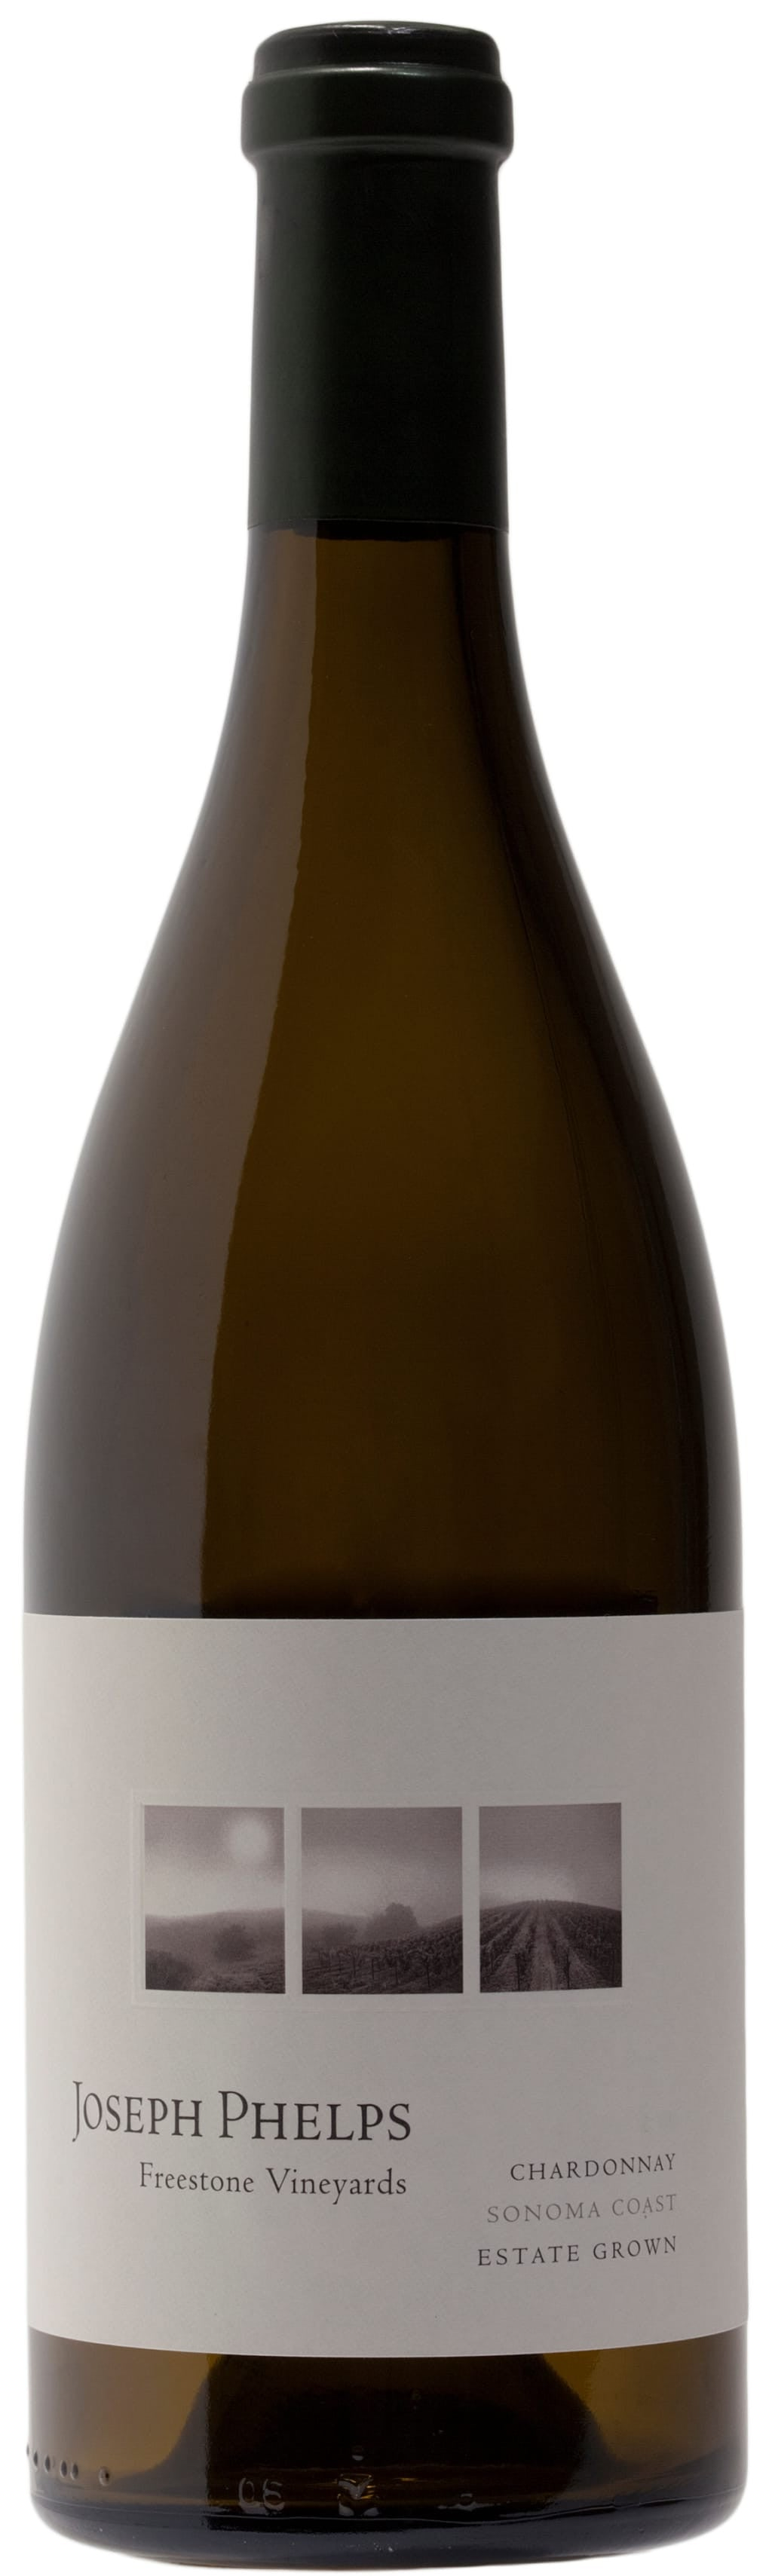 Joseph Phelps Freestone Vineyards Sonoma Coast Chardonnay 2013 - Grapes & Hops Deli